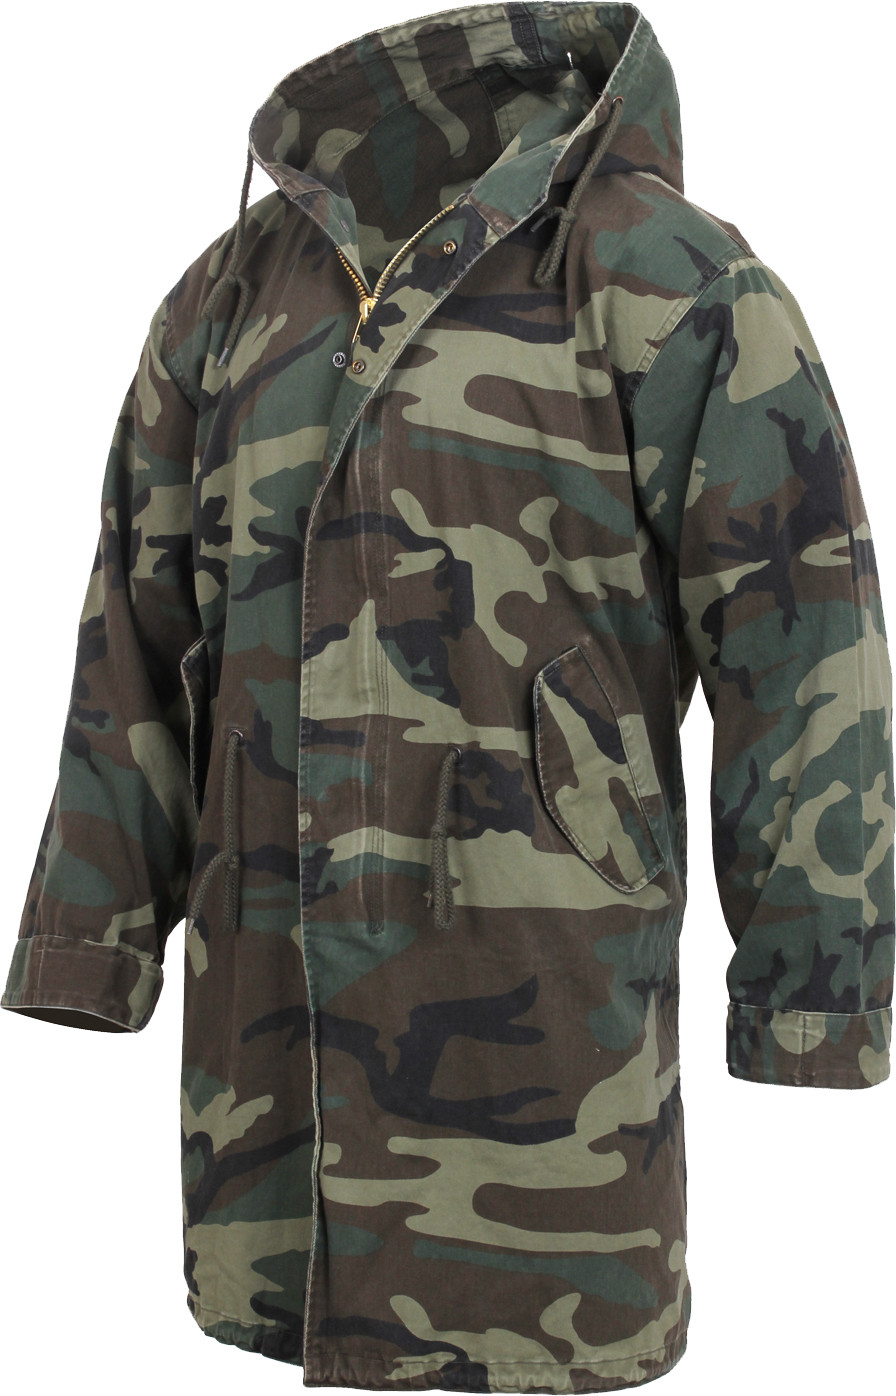 Woodland Camouflage Vintage US Army M51 Military Fishtail Parka Jacket b2a7ea0911d